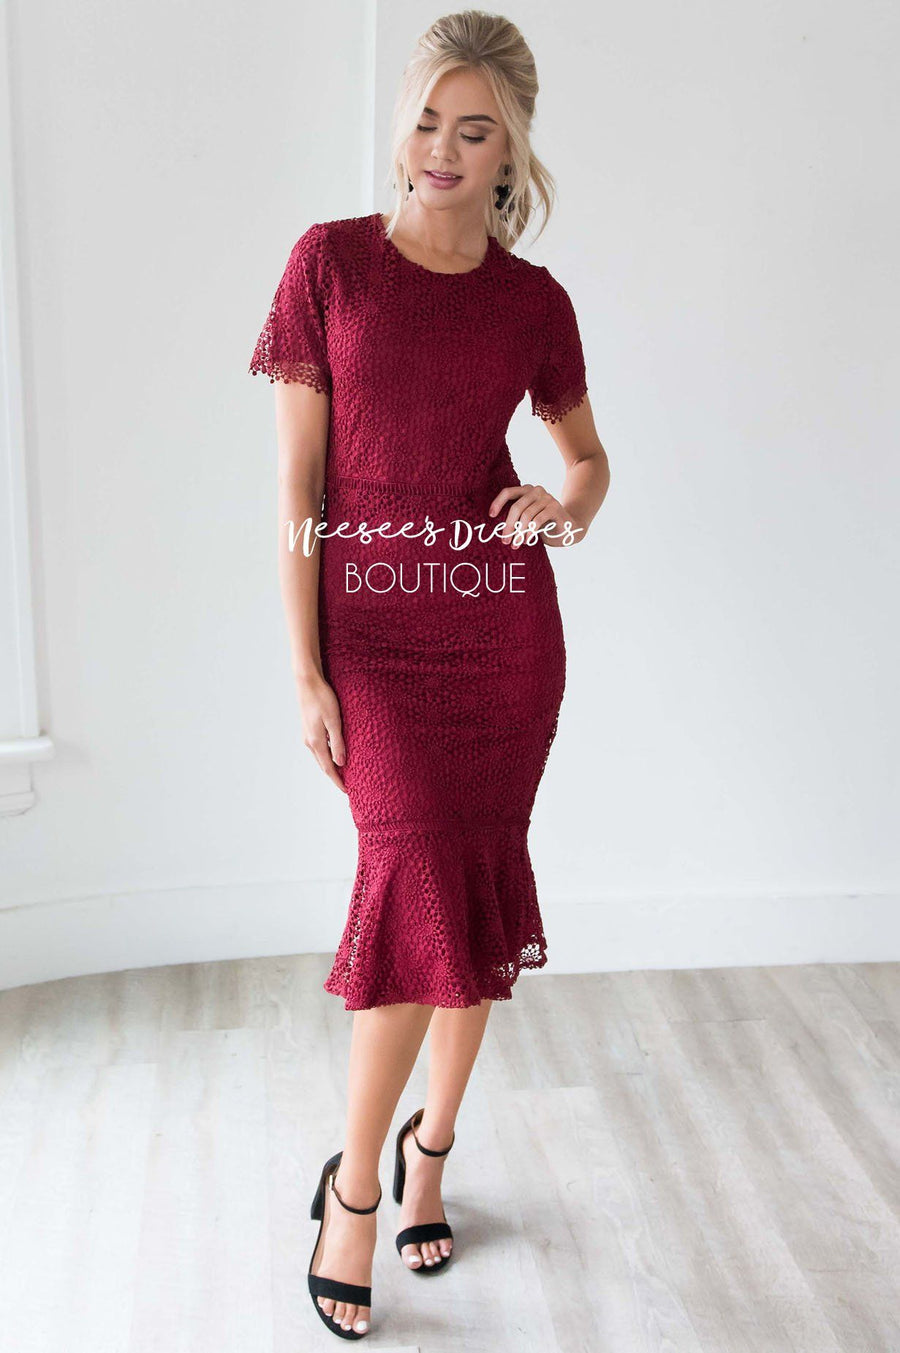 The Camila Modest Dresses vendor-unknown